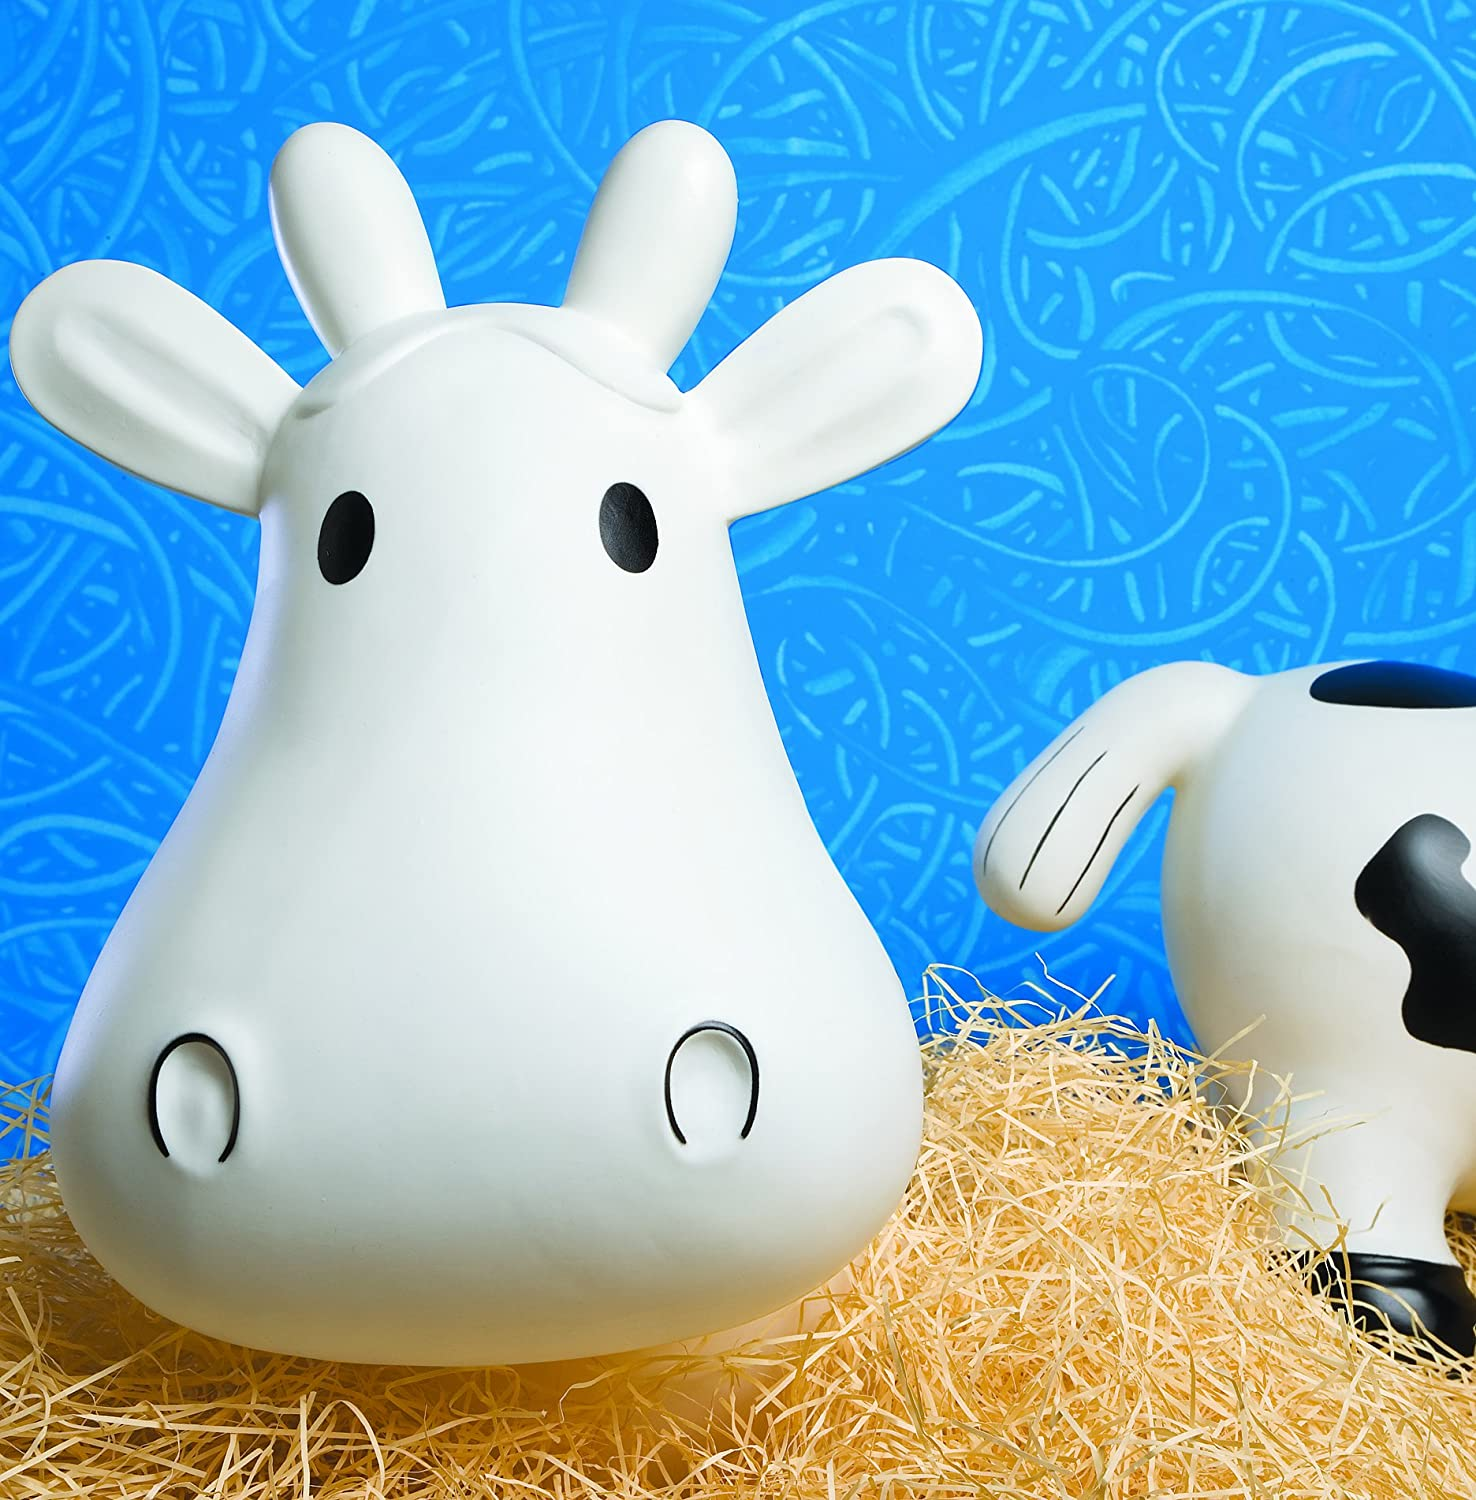 Amazon.com : Trumpette Howdy Cow Kids Inflatable Bouncy Rubber Hopper  Ride On Toy White : Bathtub Toys : Baby